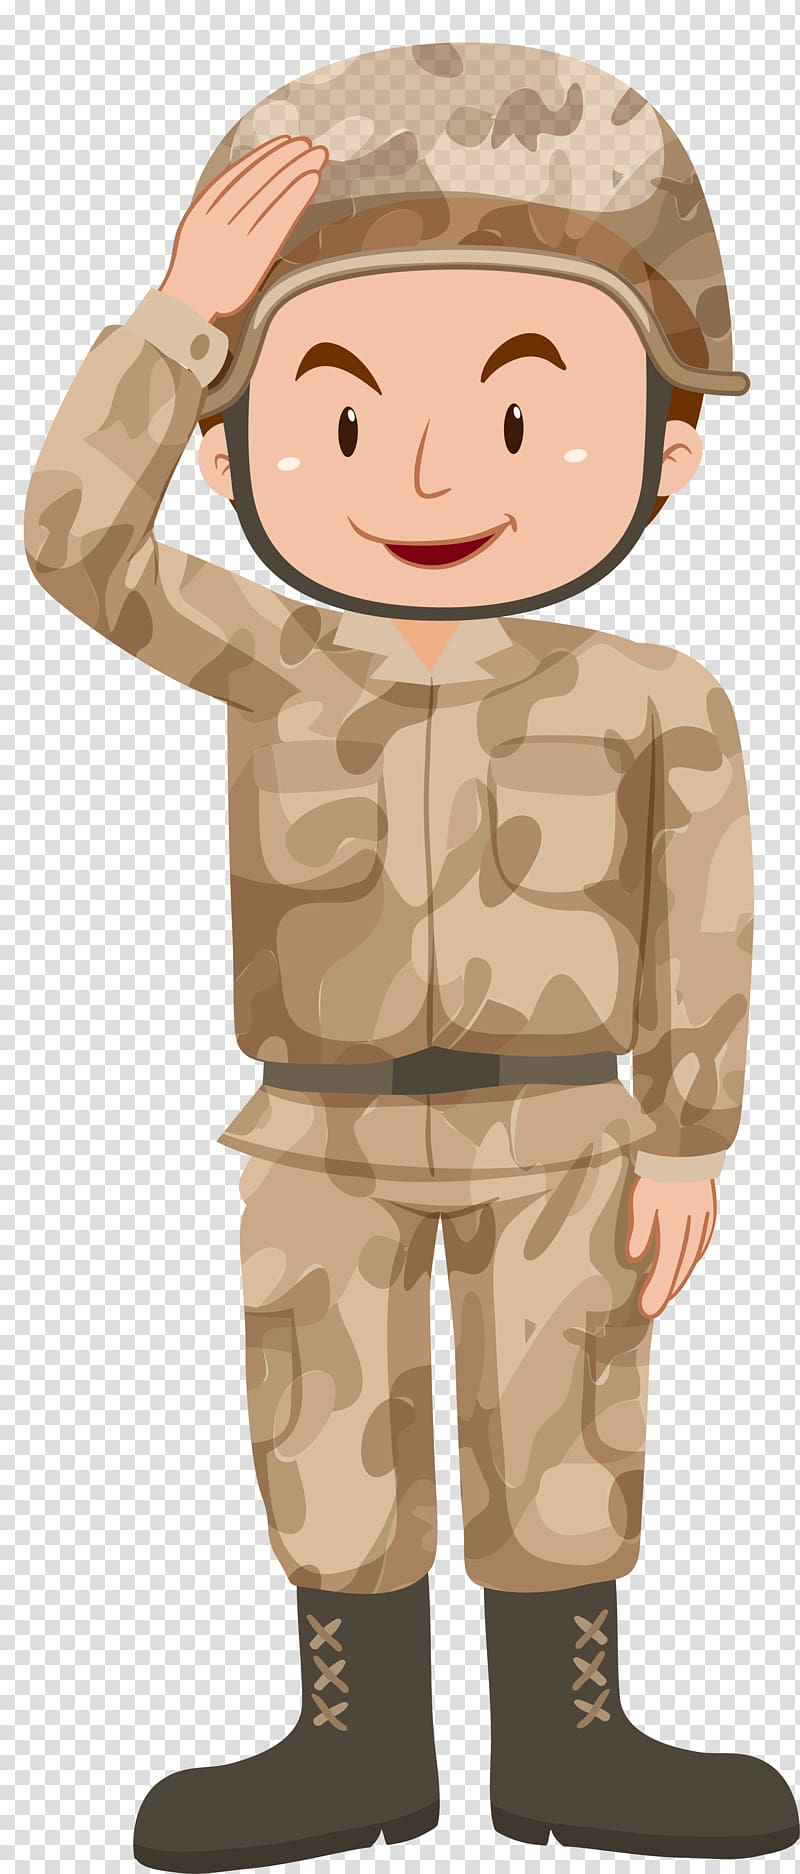 Army boy and girl clipart clip black and white download Soldier Illustration, Yellow cartoon soldier transparent background ... clip black and white download